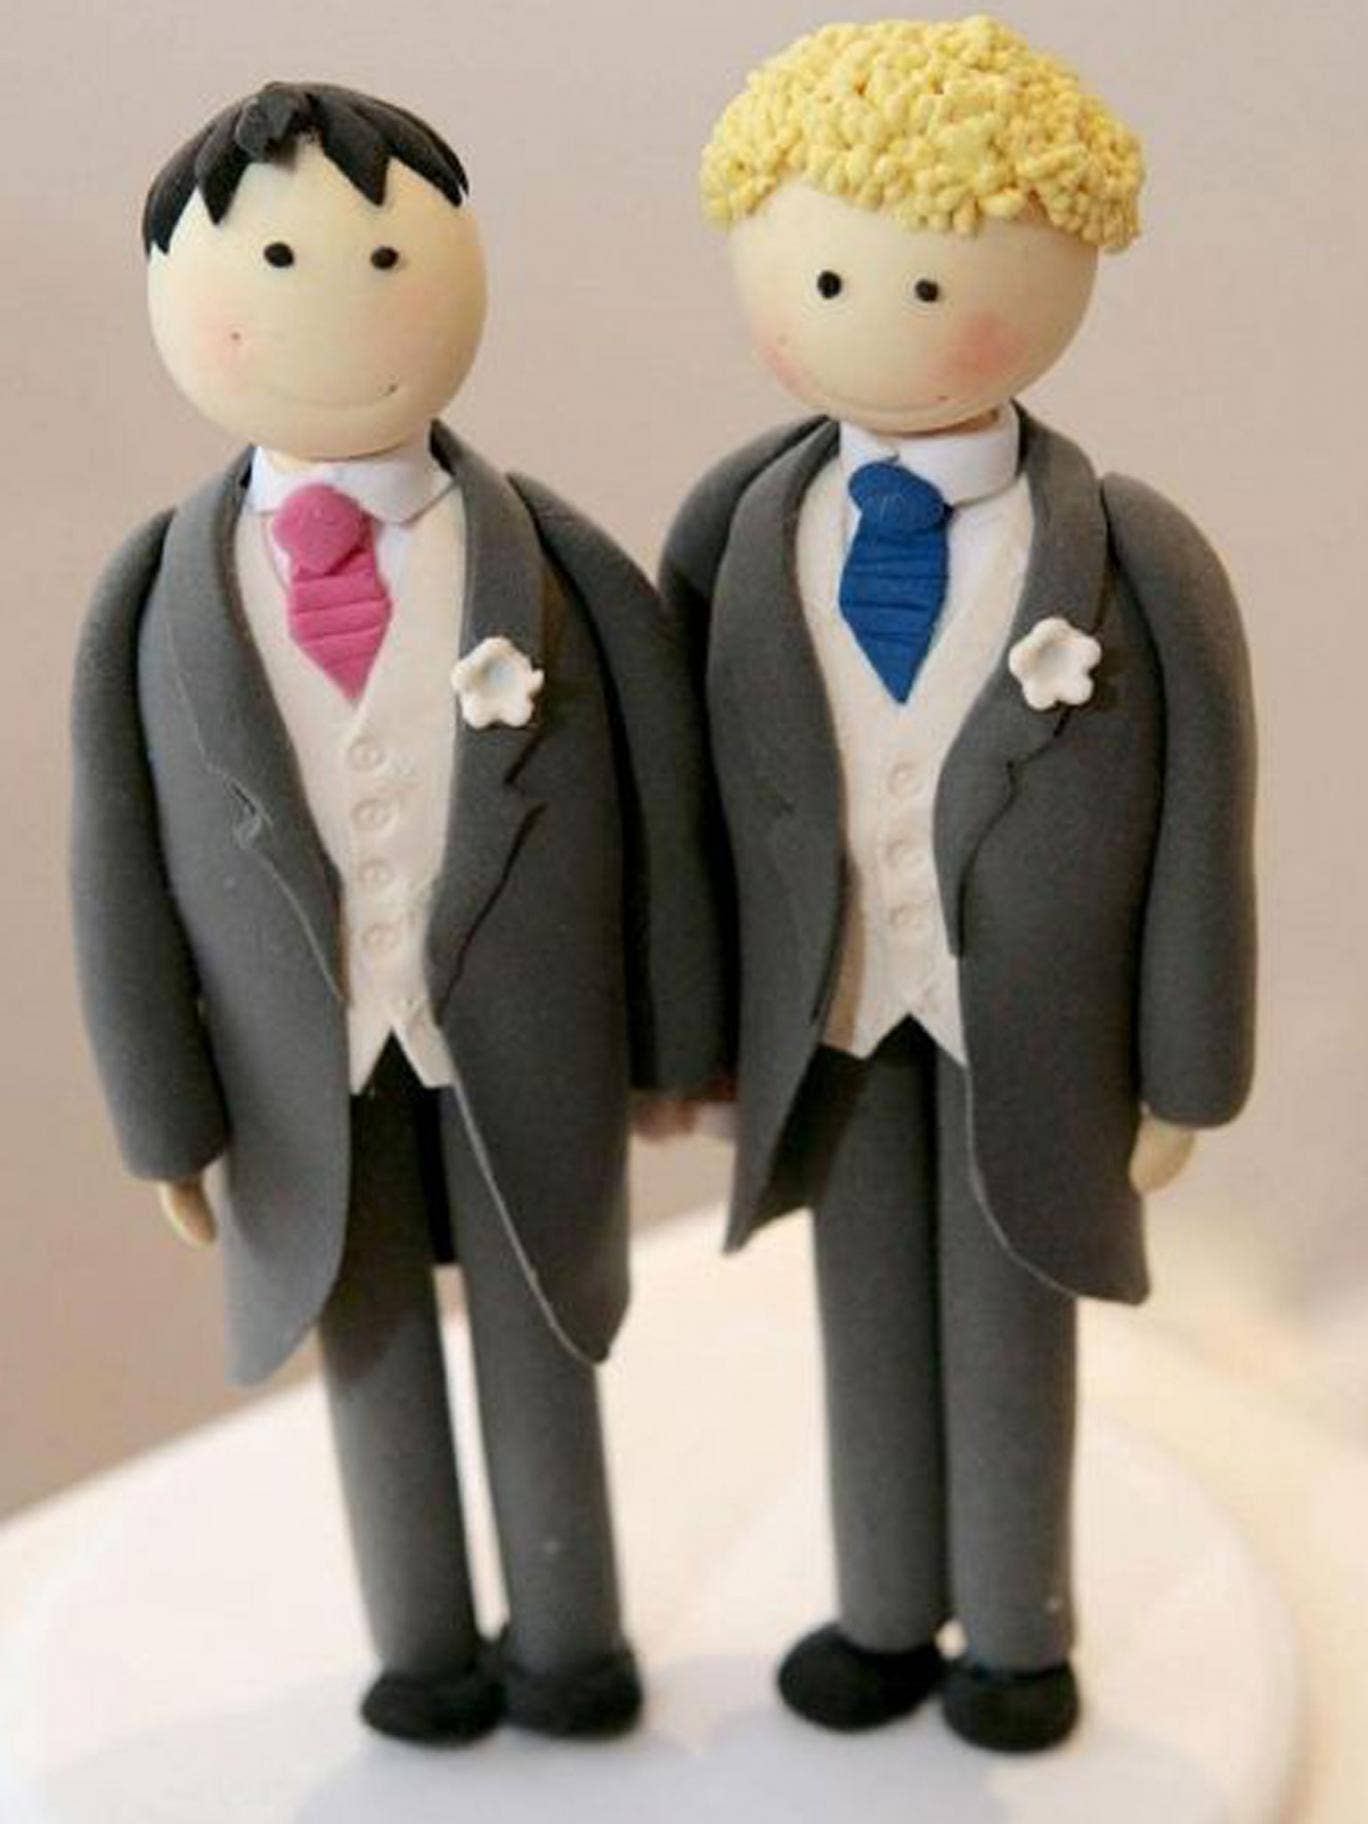 Those for and against same-sex unions claim intolerance and abuse has bordered on hatred